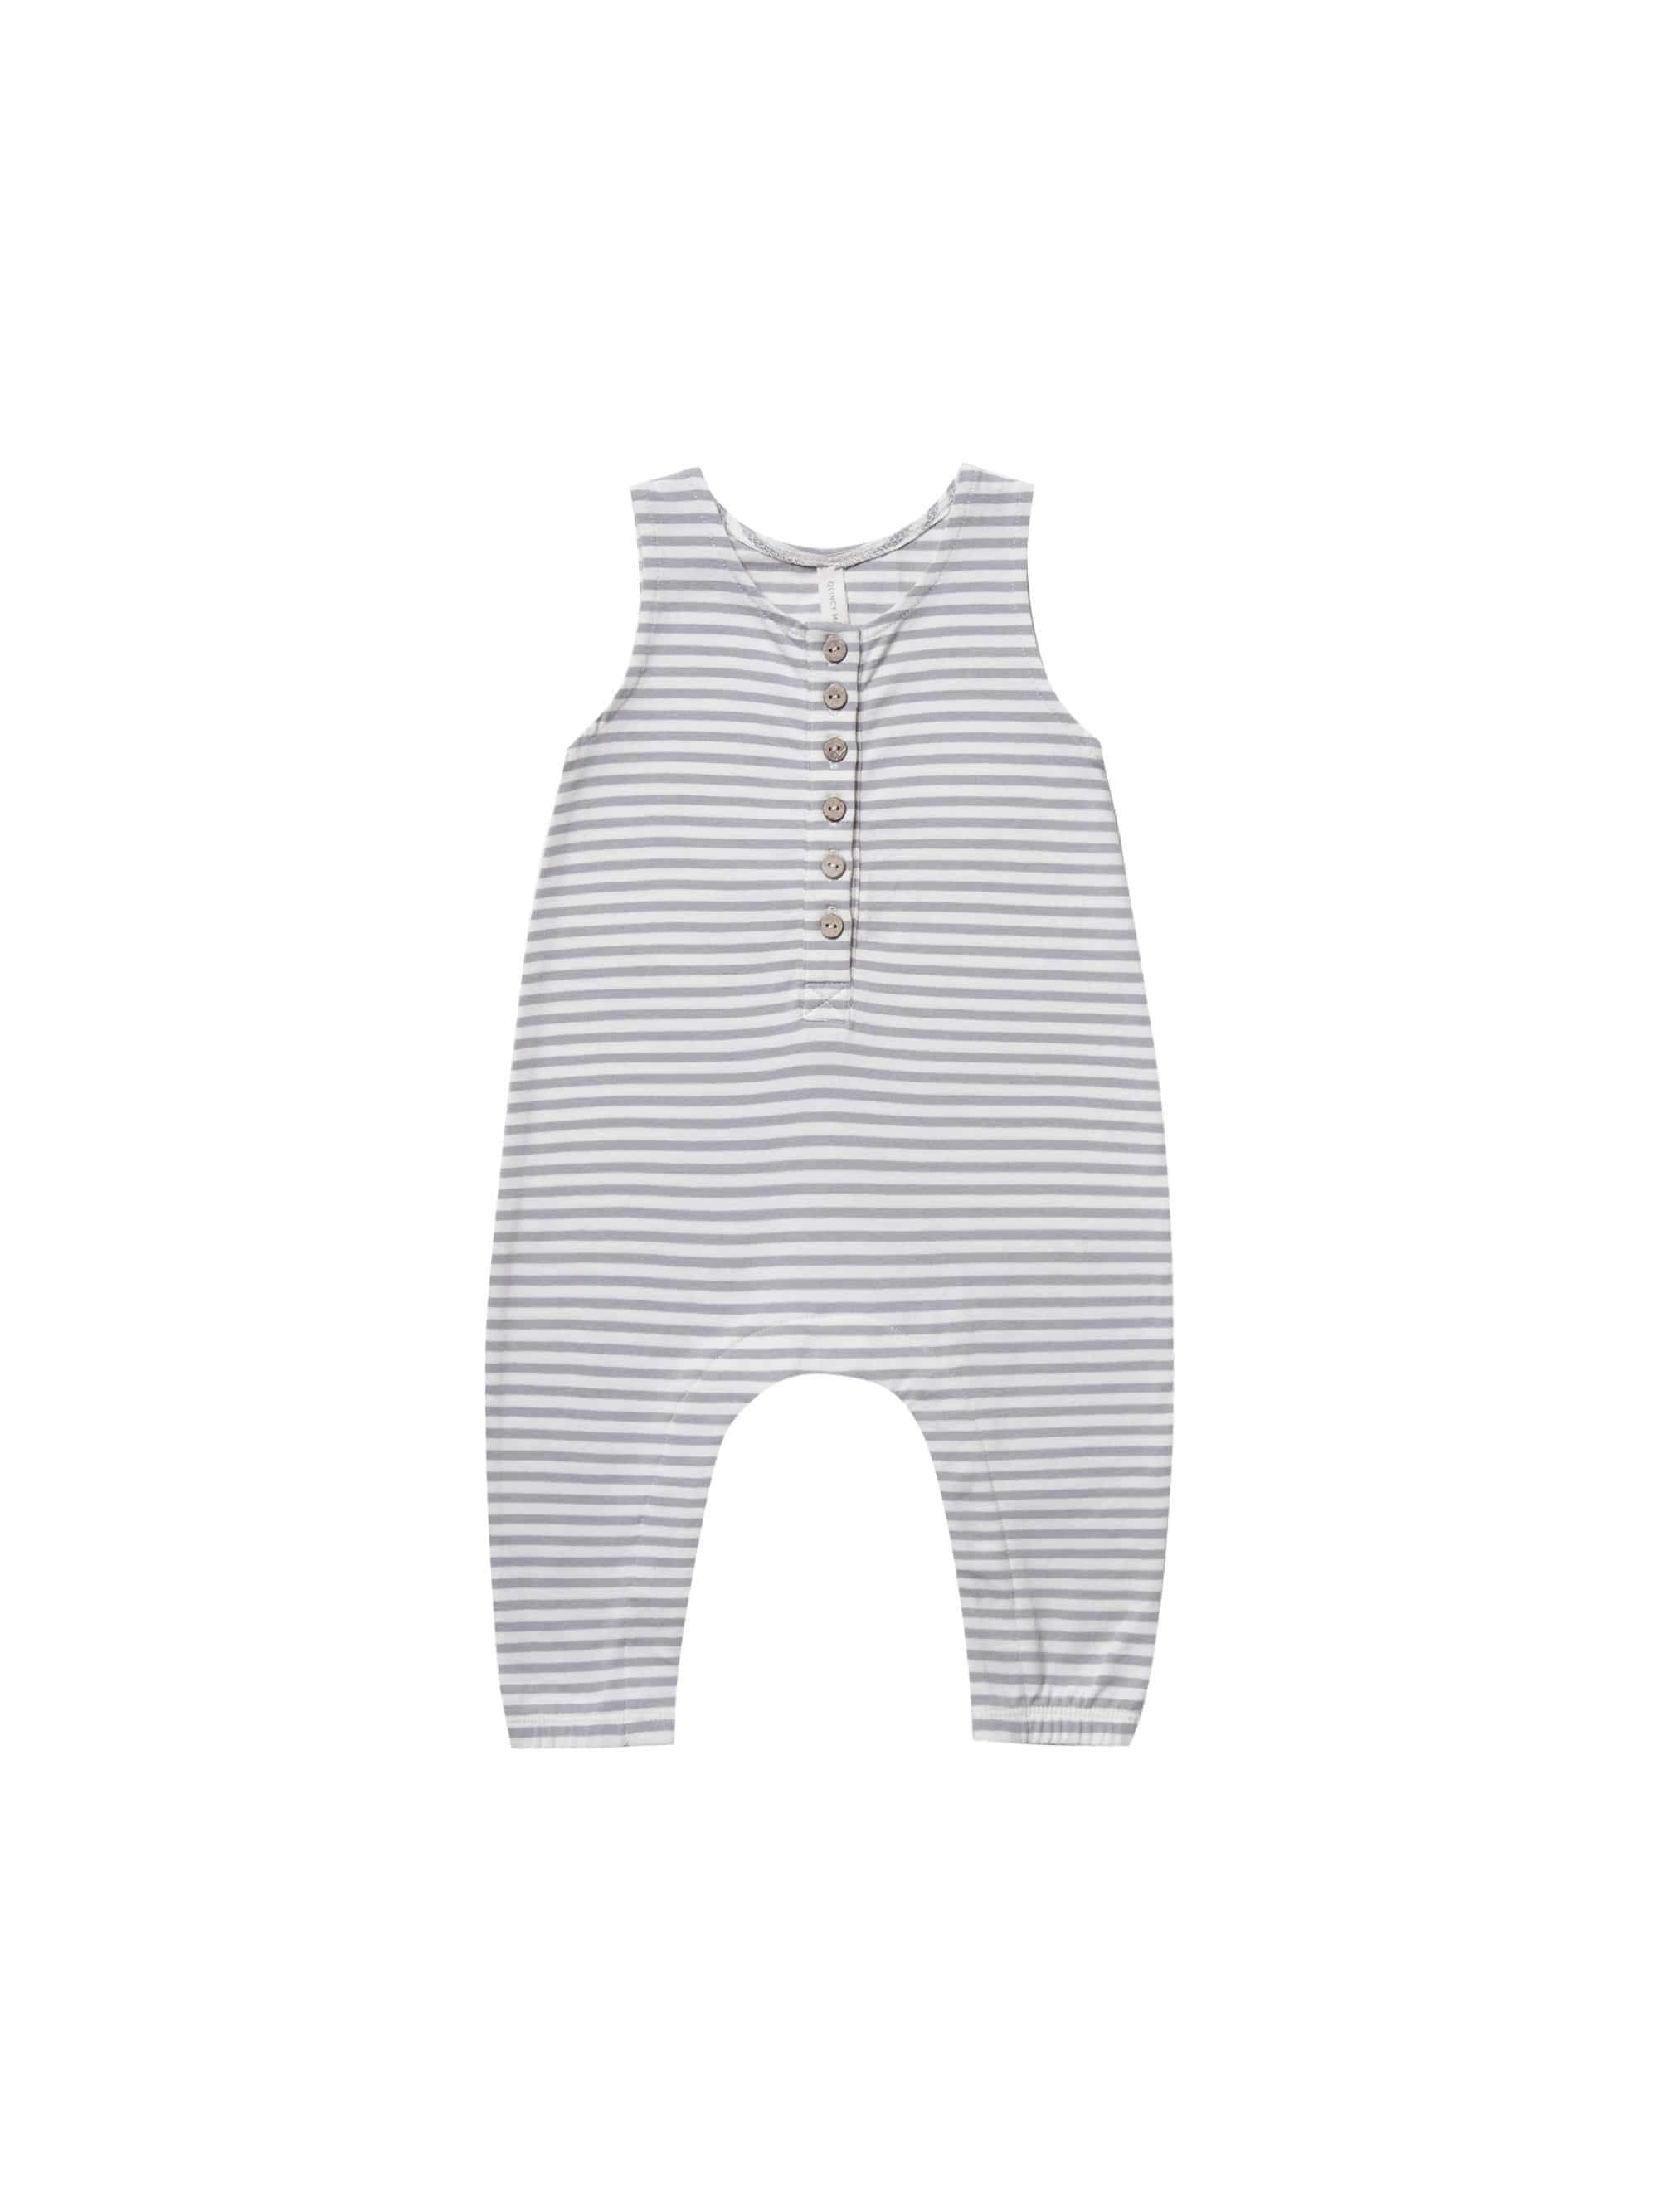 Quincy Mae Sleeveless Jumpsuit - Grey Stripe